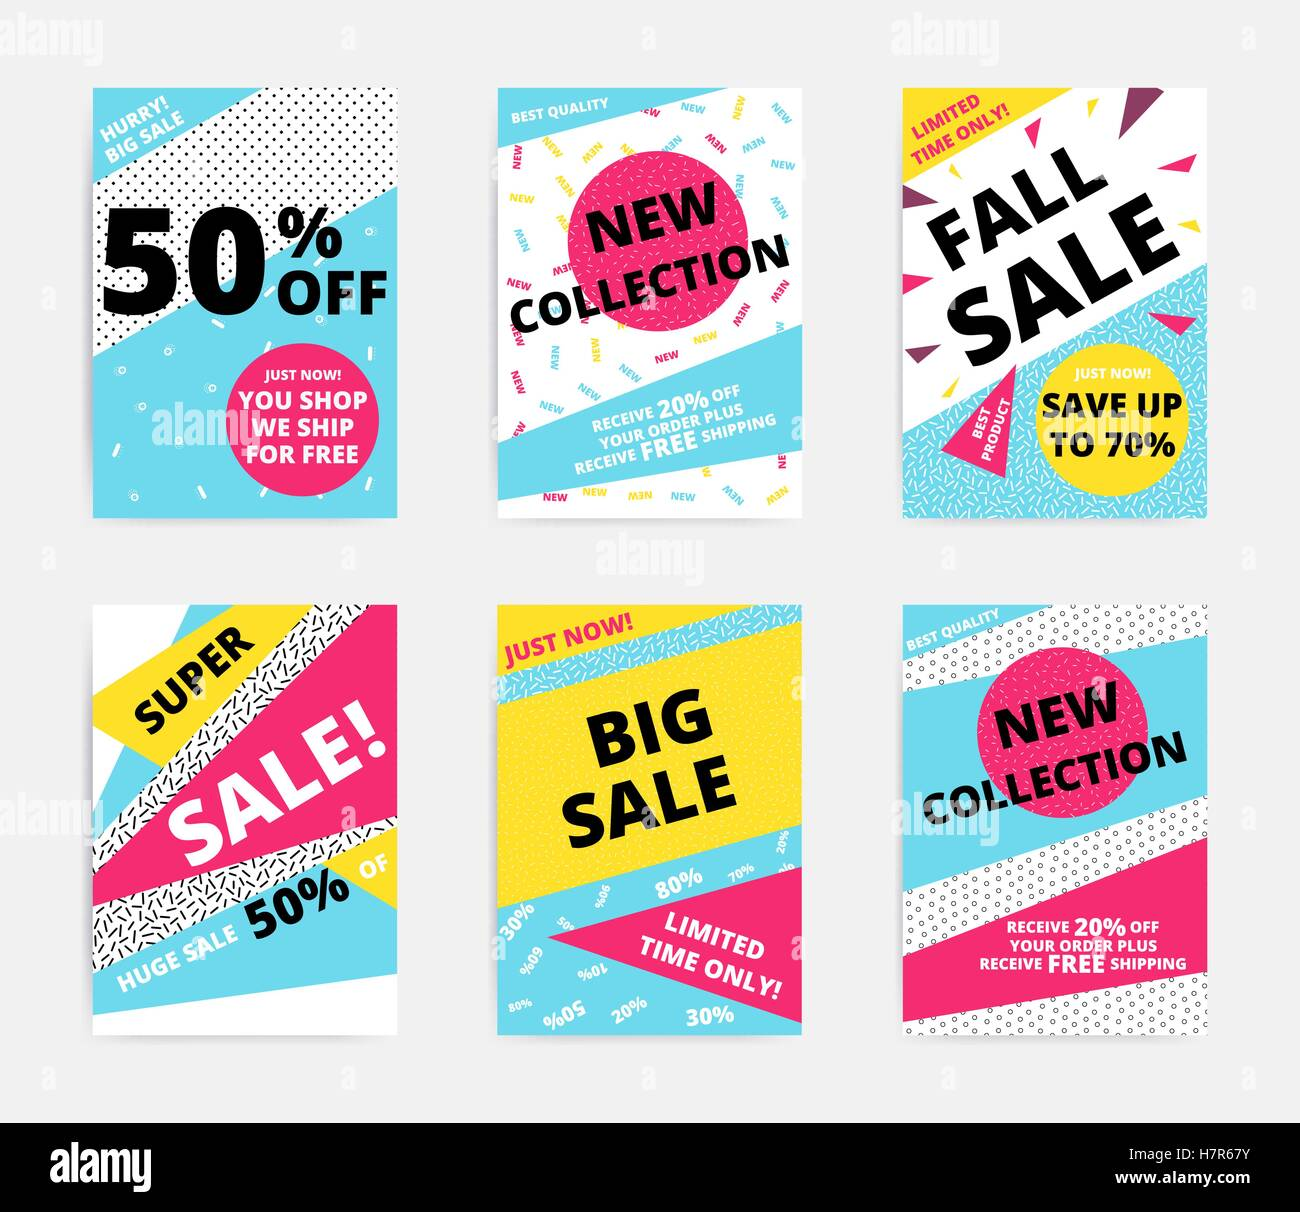 Flat design sale set website banner template. Bright colorful vector illustrations for social media, posters, email, - Stock Image